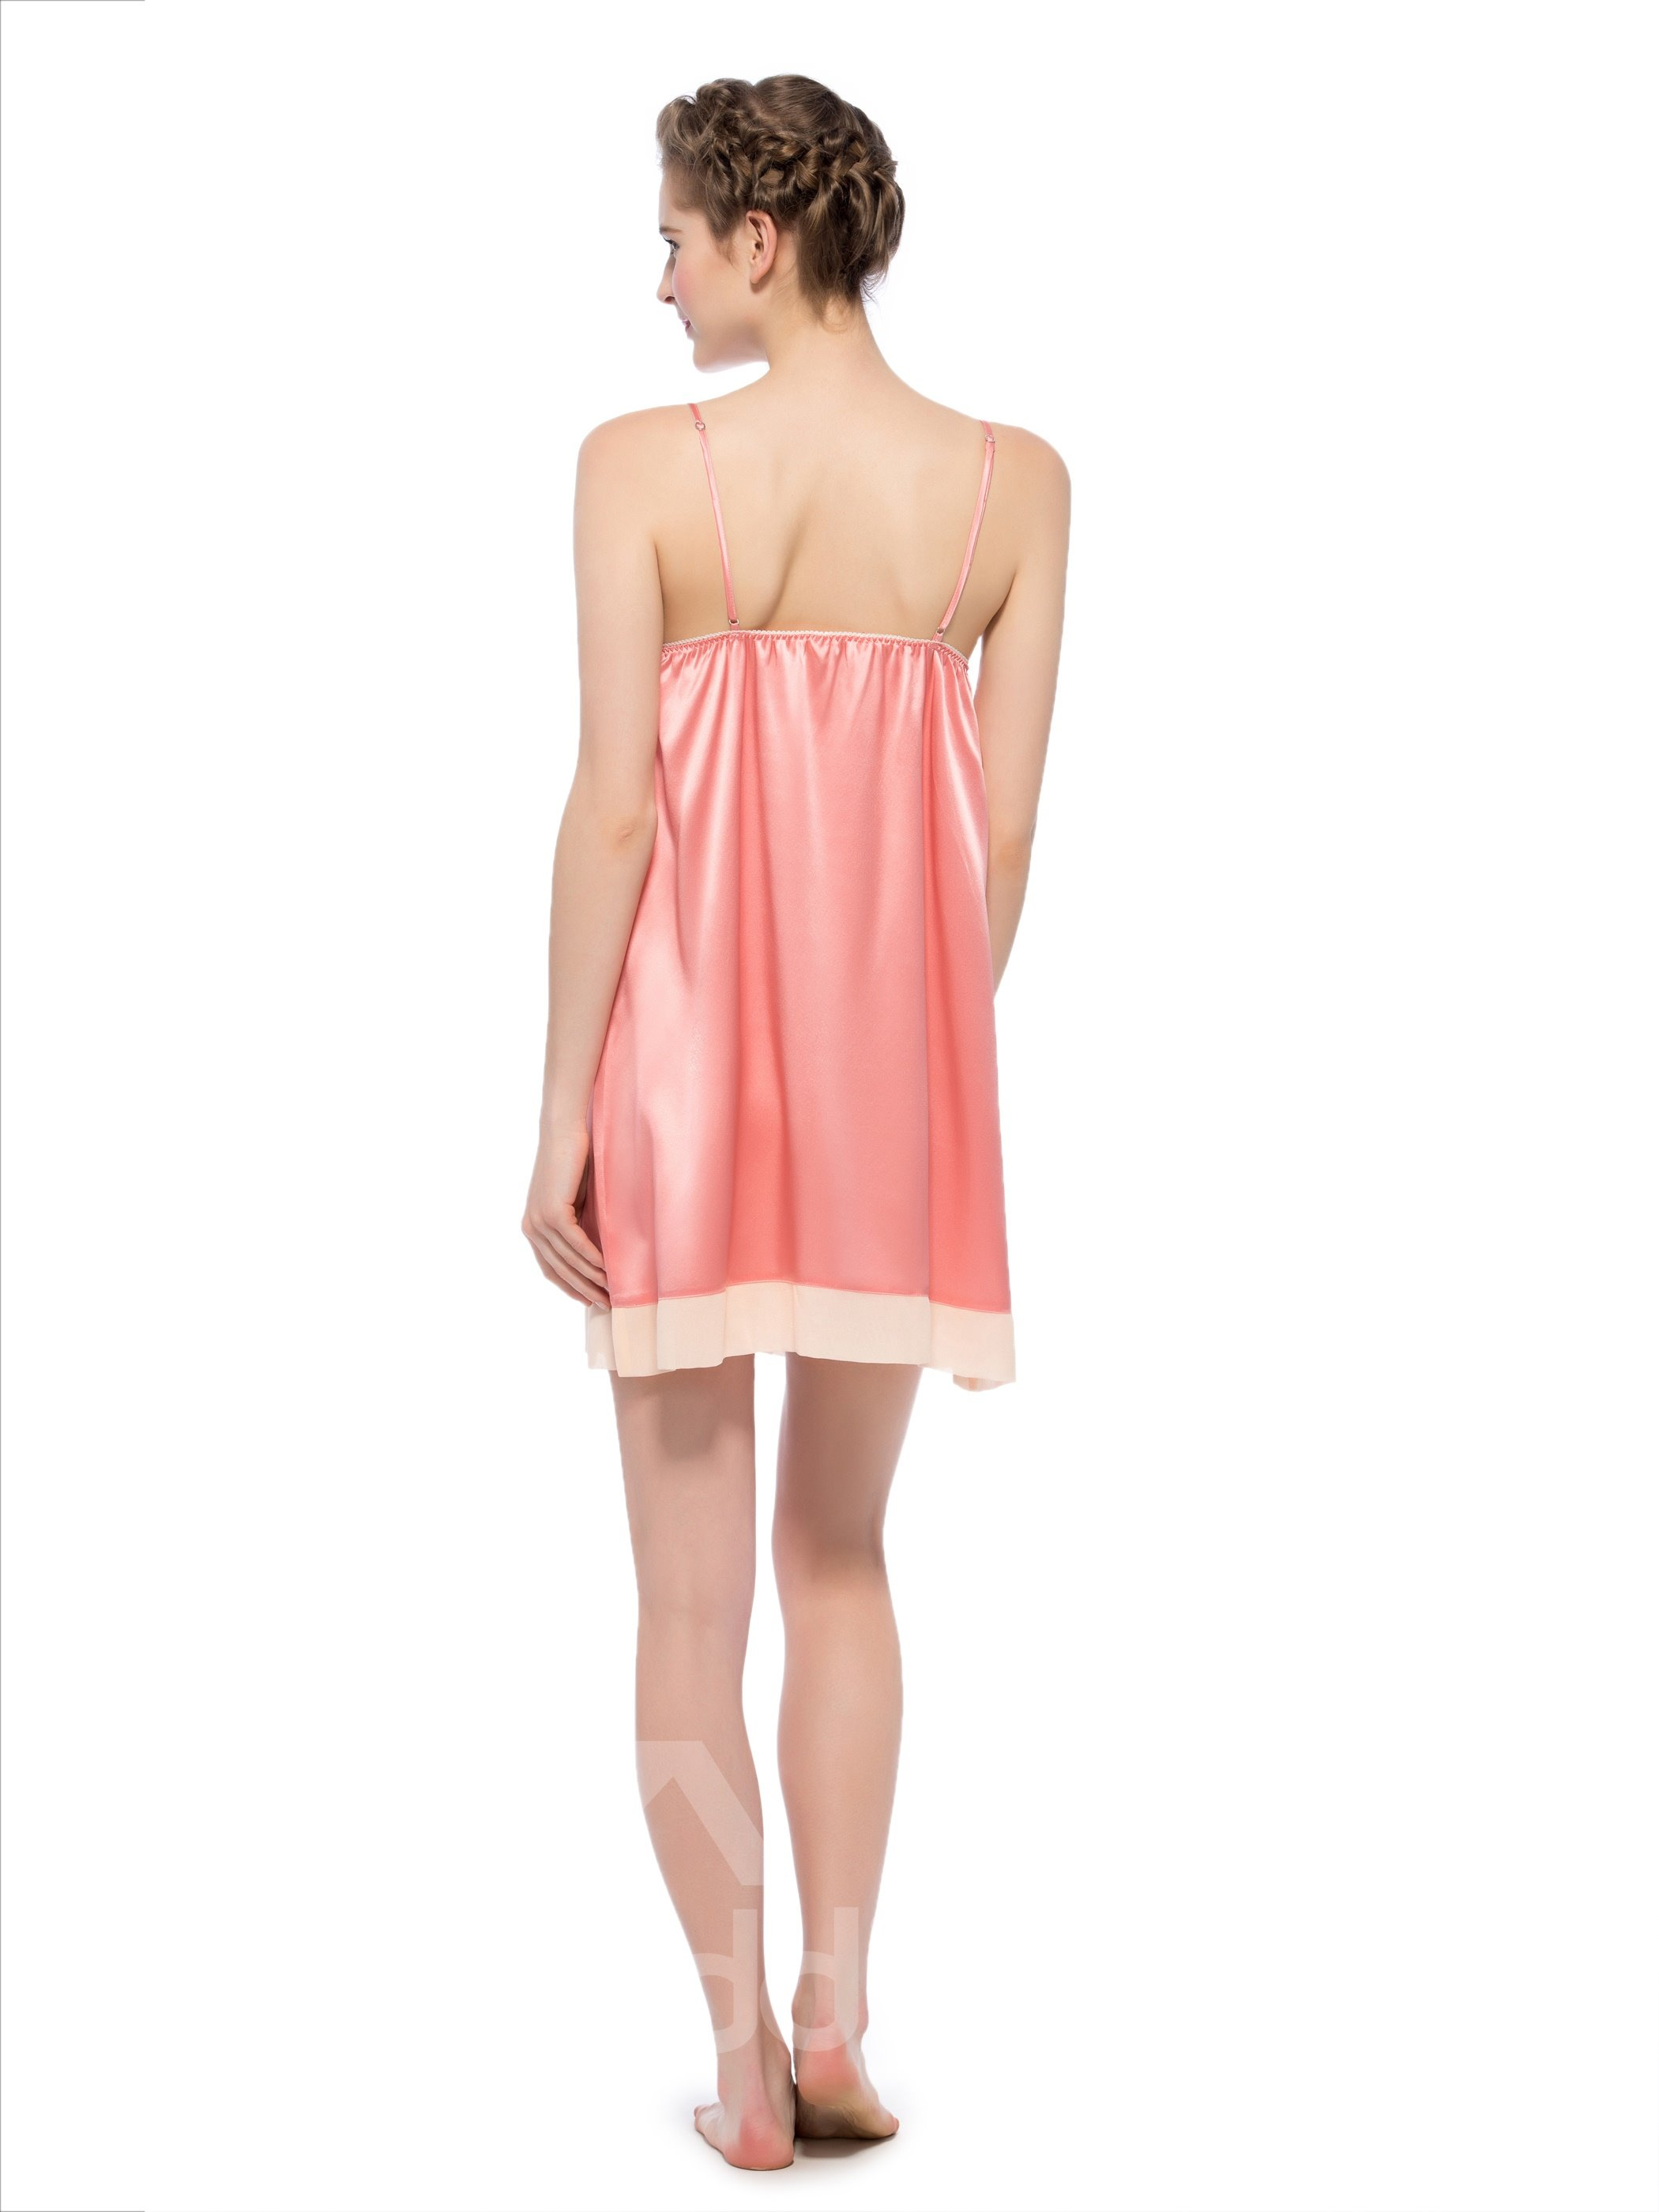 Lovely Pink Contra Trim Bust and Hem Bowknot Silk Chemise